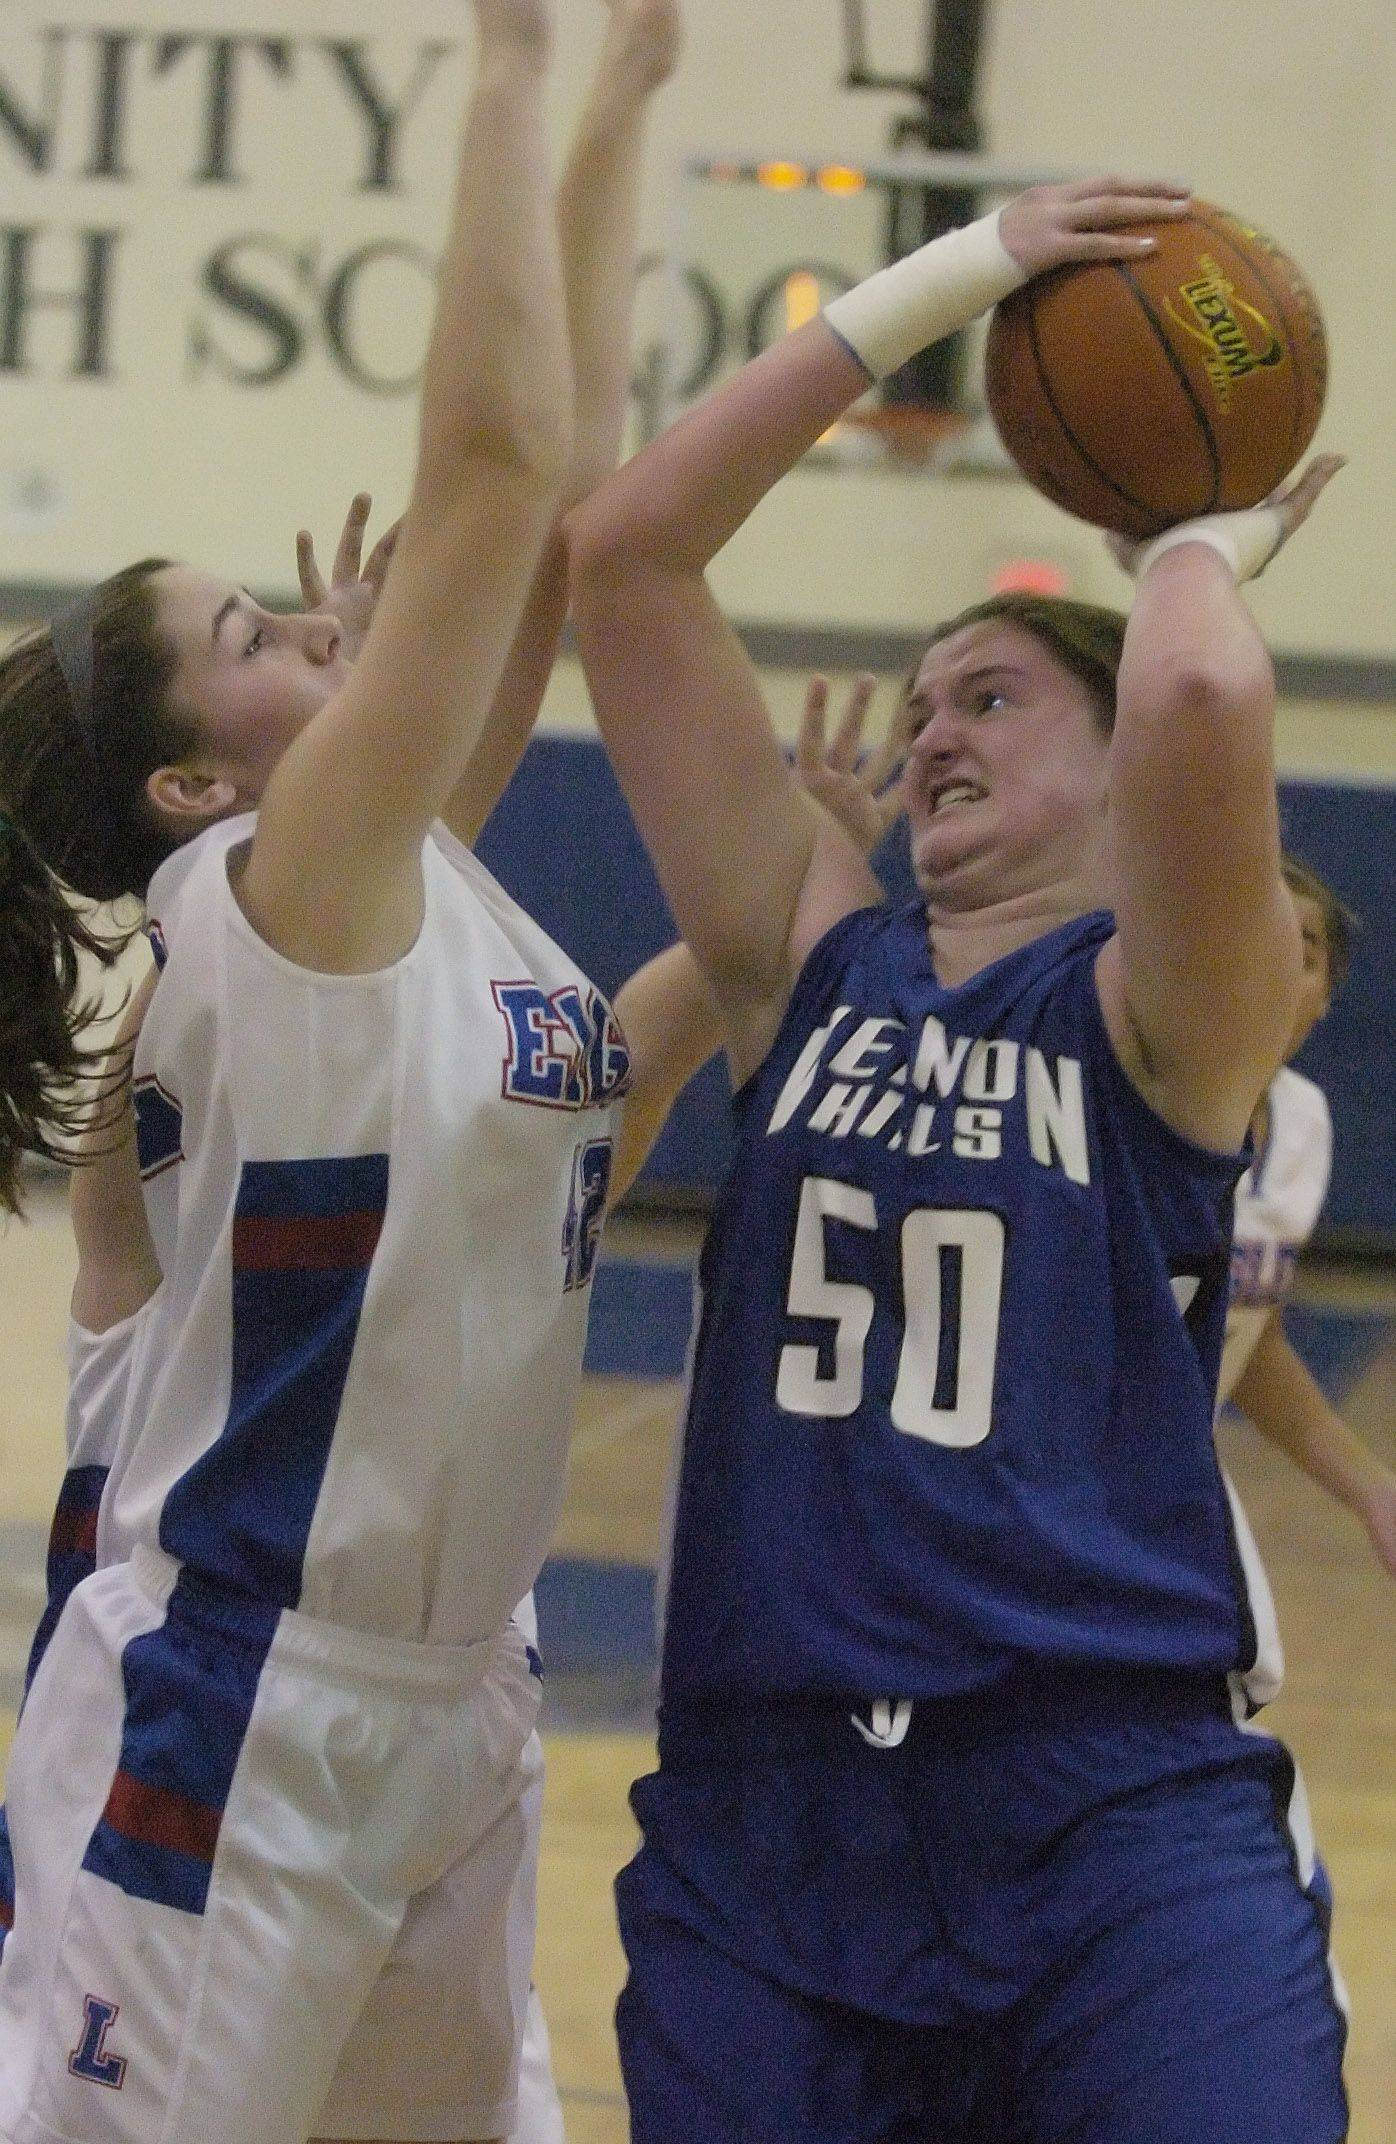 Vernon Hills' Meri Bennett-Swanson, left, goes strong to the basket against Lakes' Terese McMahon Saturday in Lake Villa.